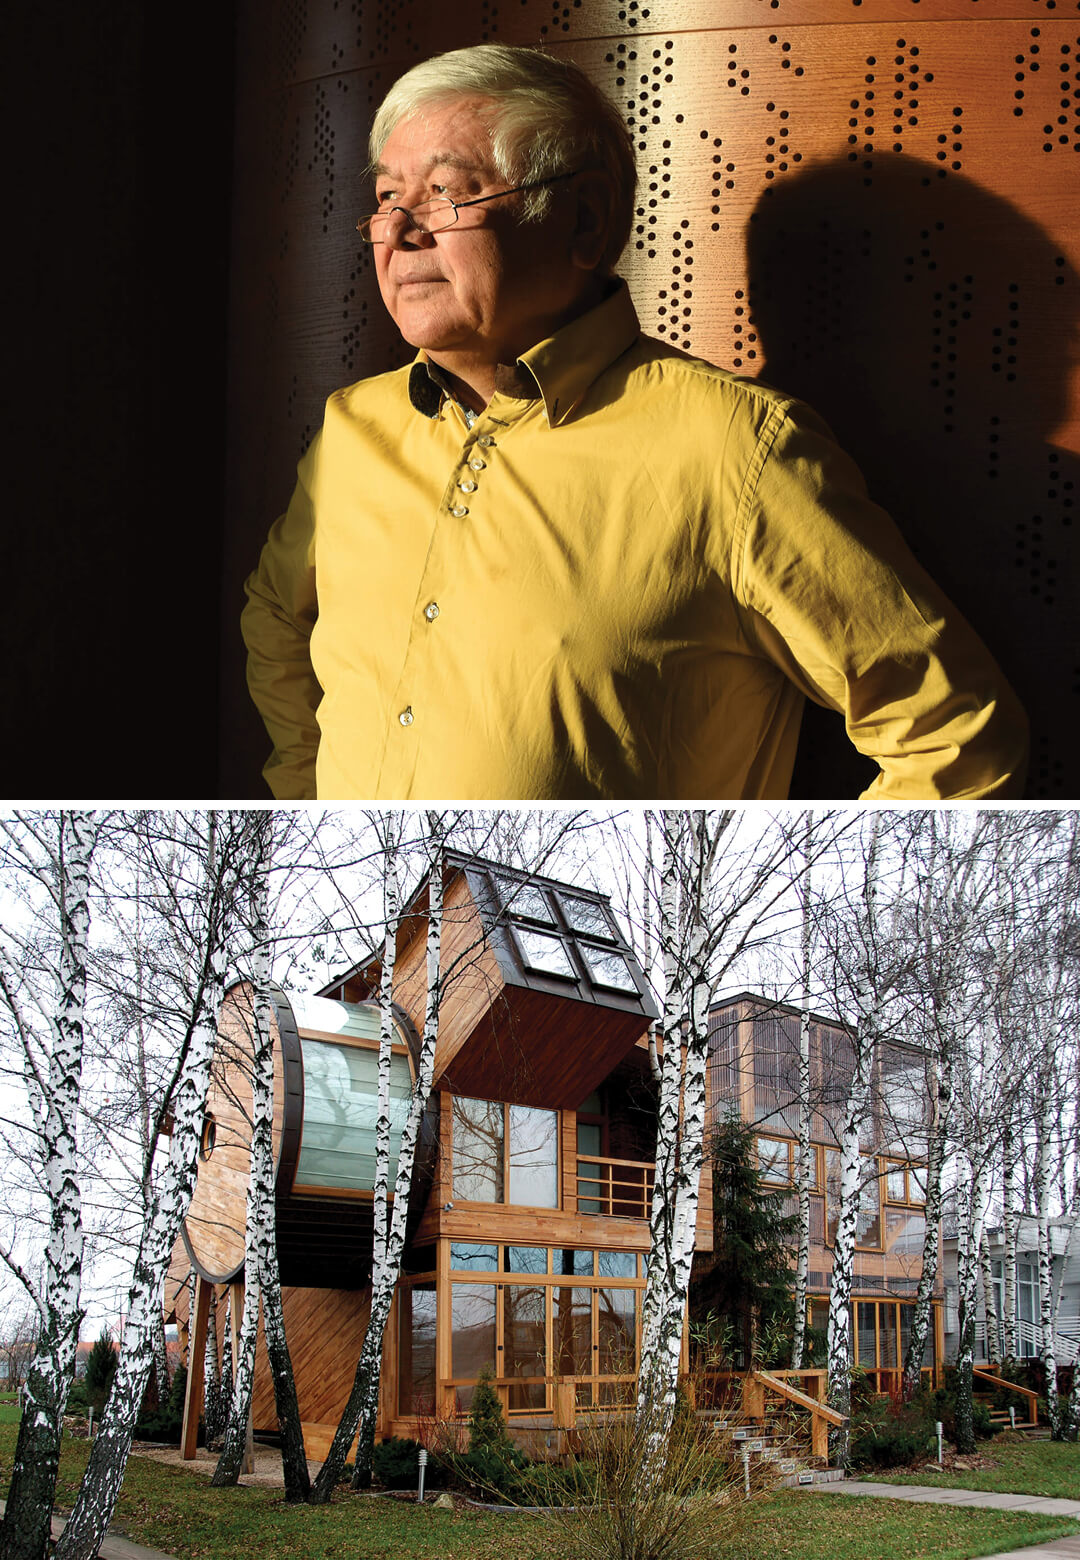 From L to R: House Telescope in Pirogovo designed by Russian architect Totan Kuzembaev | Russian architect Totan Kuzembaev | STIRworld